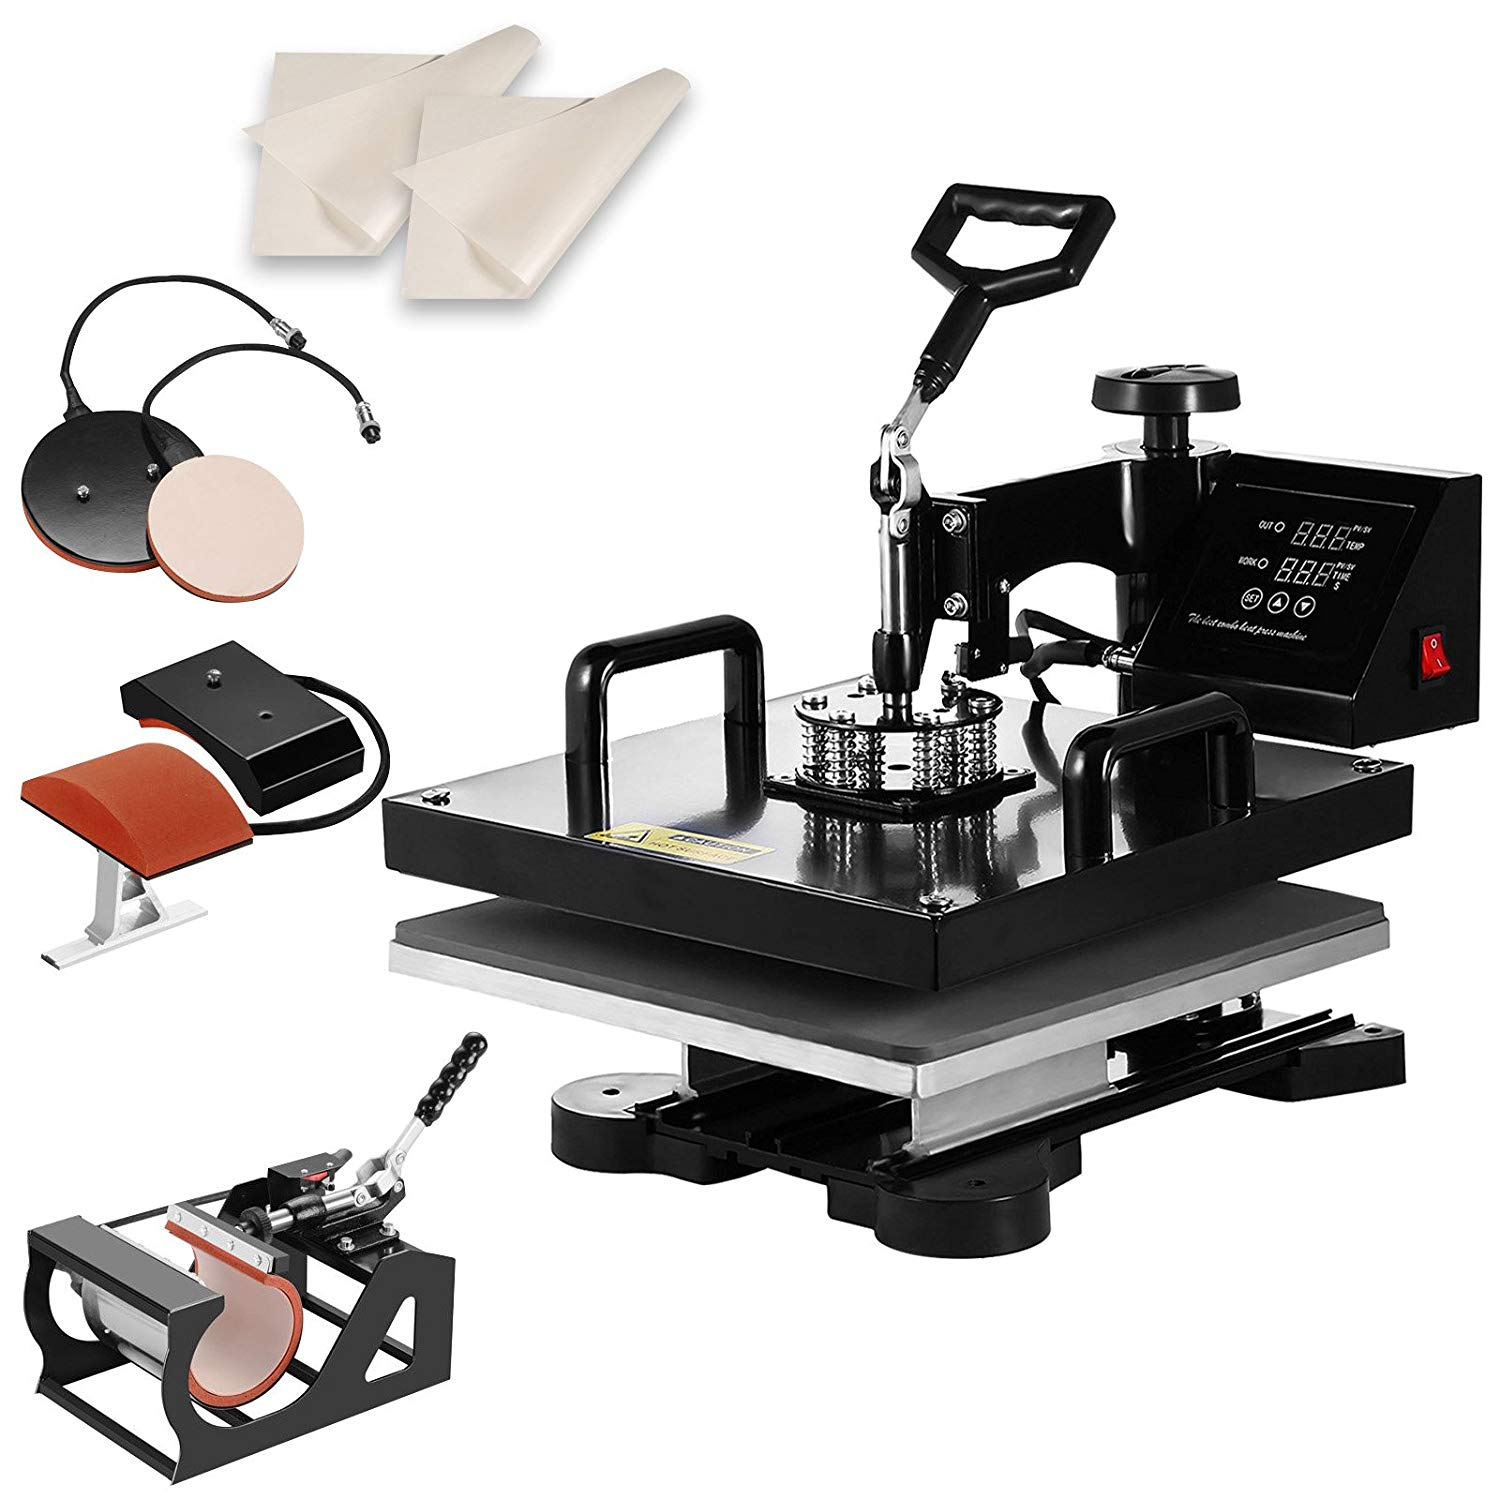 "SHZOND 15"" x 15"" Heat Press Machine 5 in 1 Heat Transfer Machine Multifunctional Swing-Away Heat Press for T Shirts Hat Mug Plate (5 in 1)"